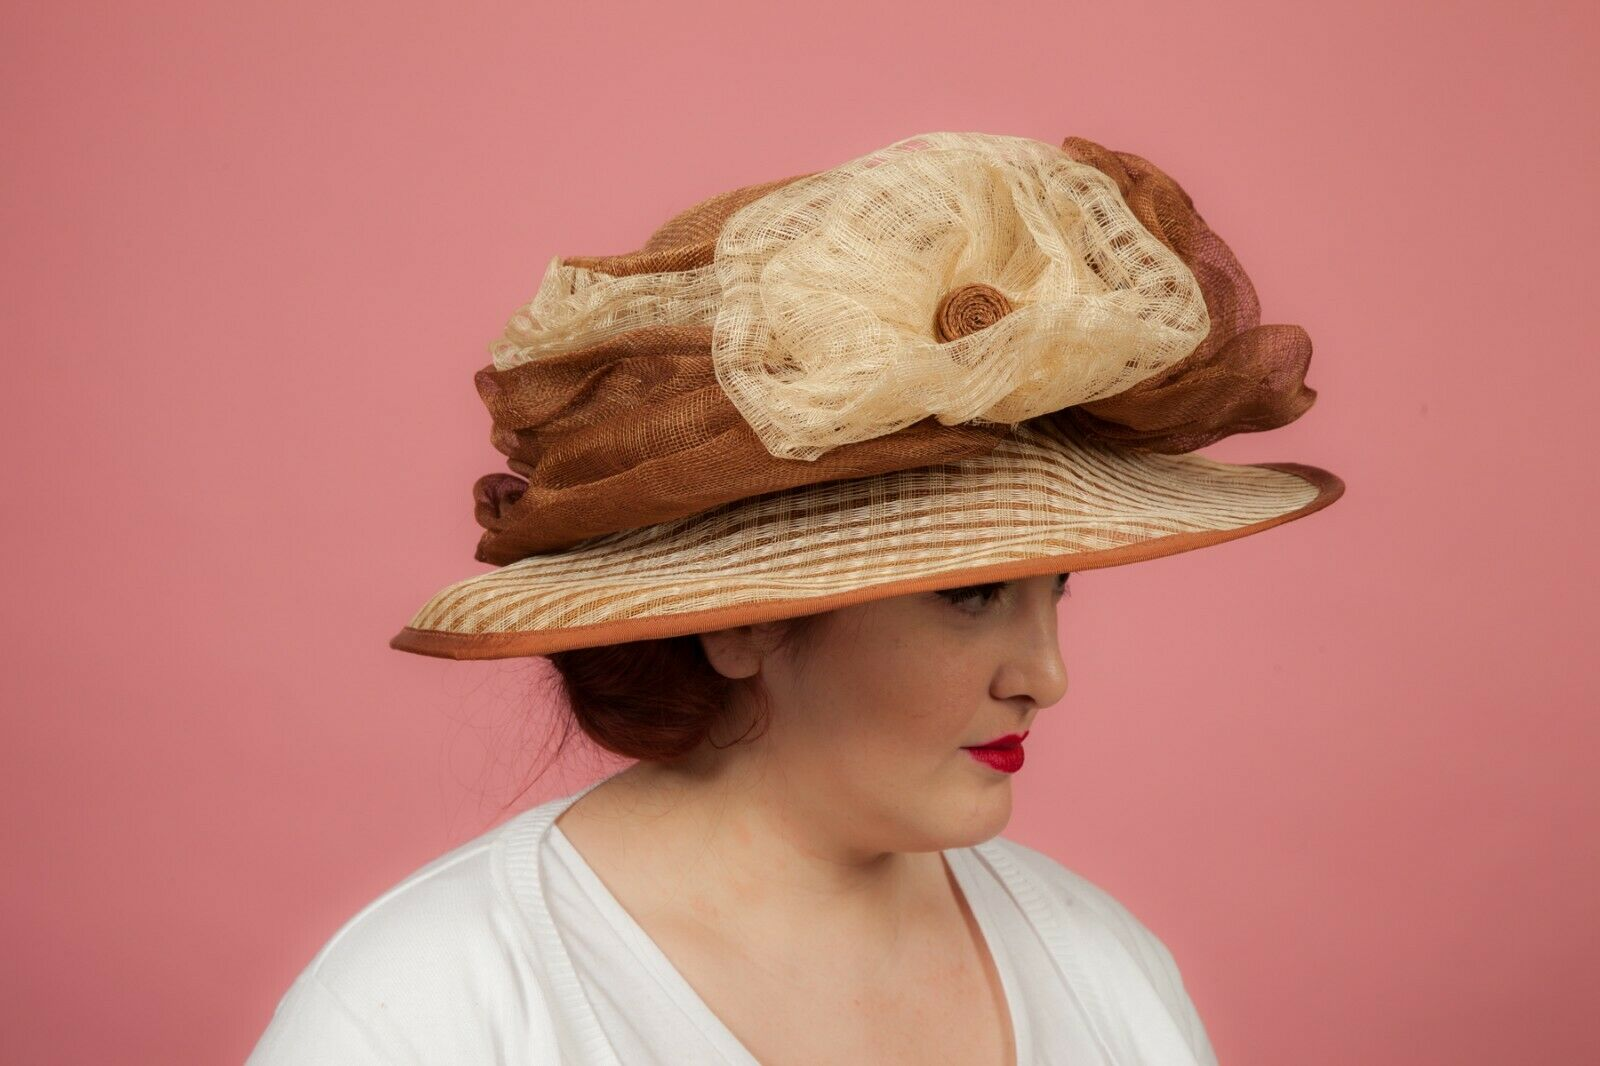 Oversized brown and cream ruffled flower formal hat by Victoria Anne